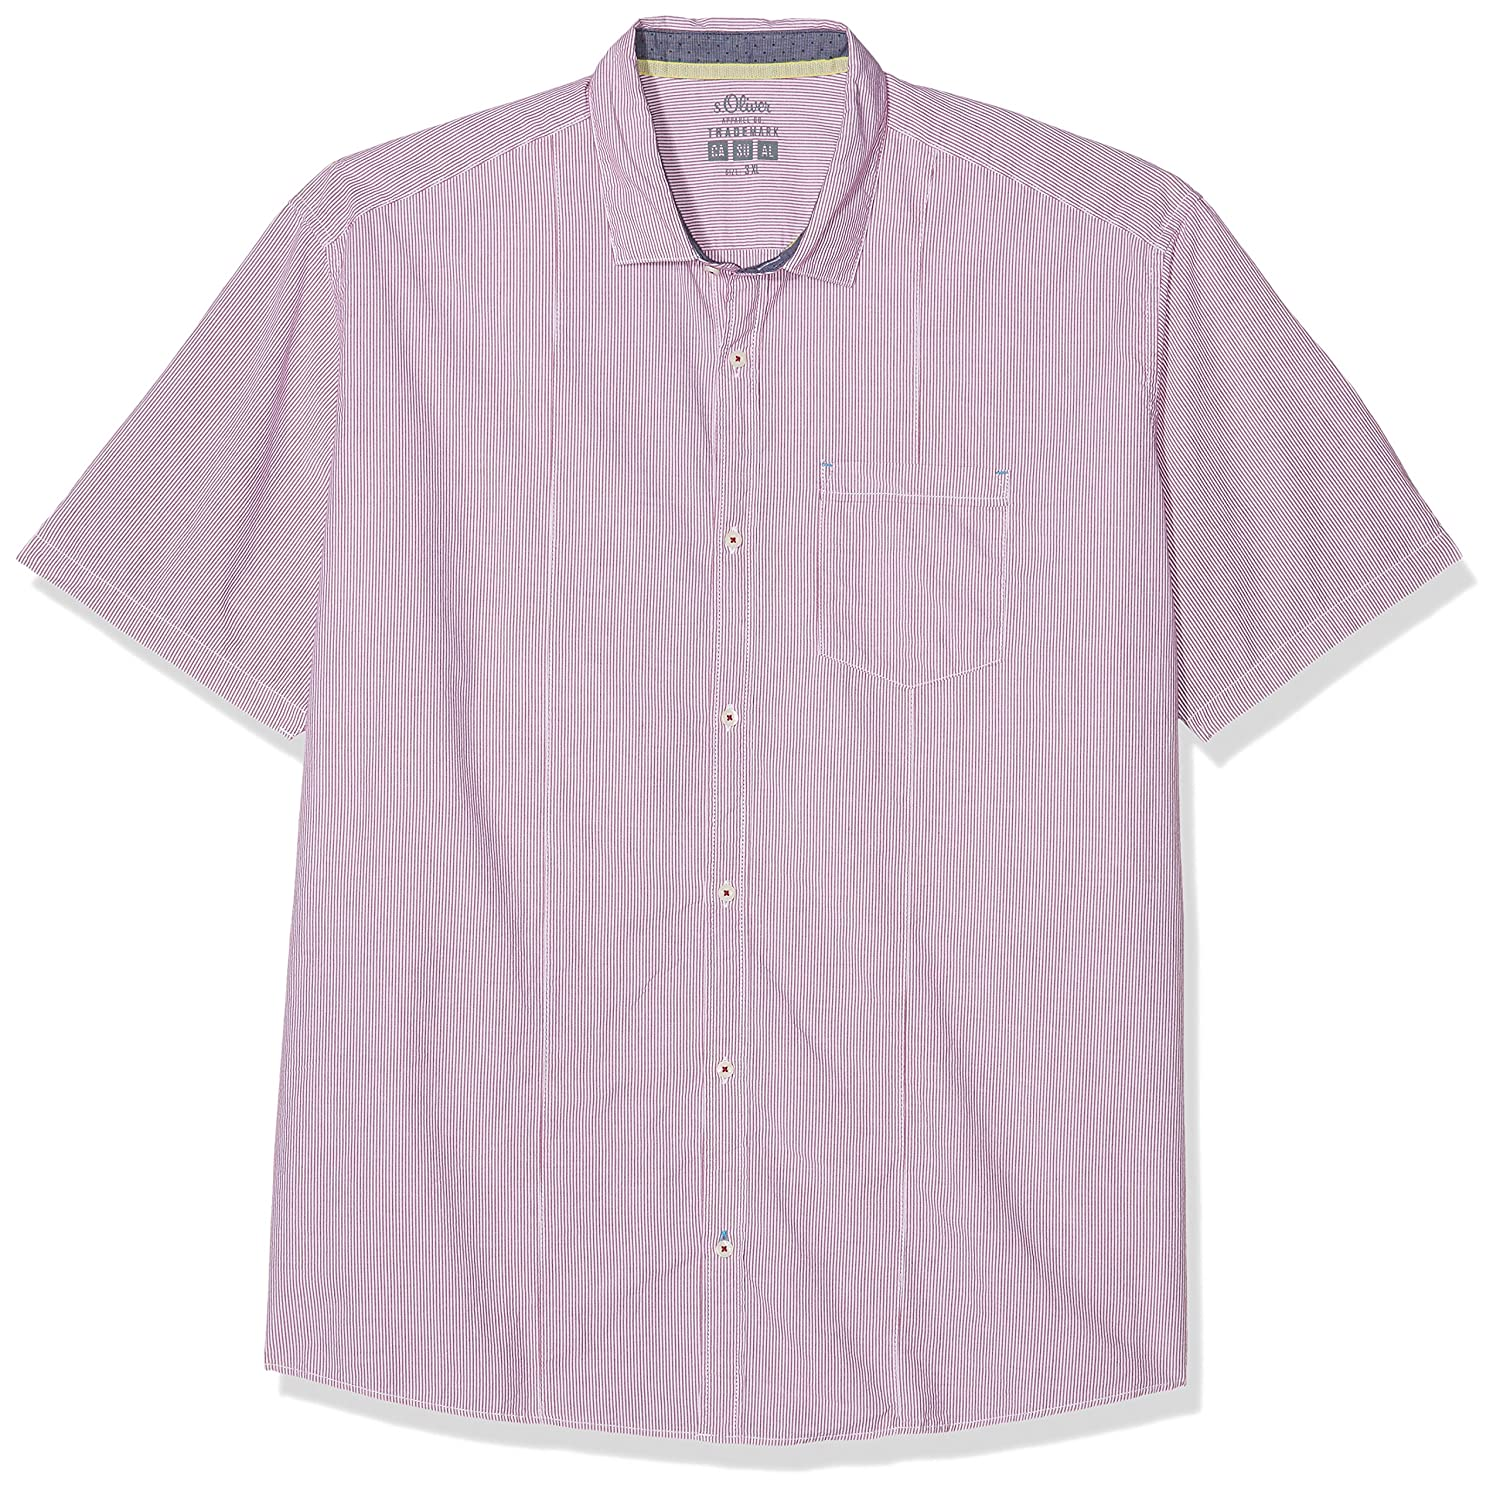 15.804.22.2198, Camisa Casual para Hombre, Rot (Cool Grape 46g9), XXXL s.Oliver